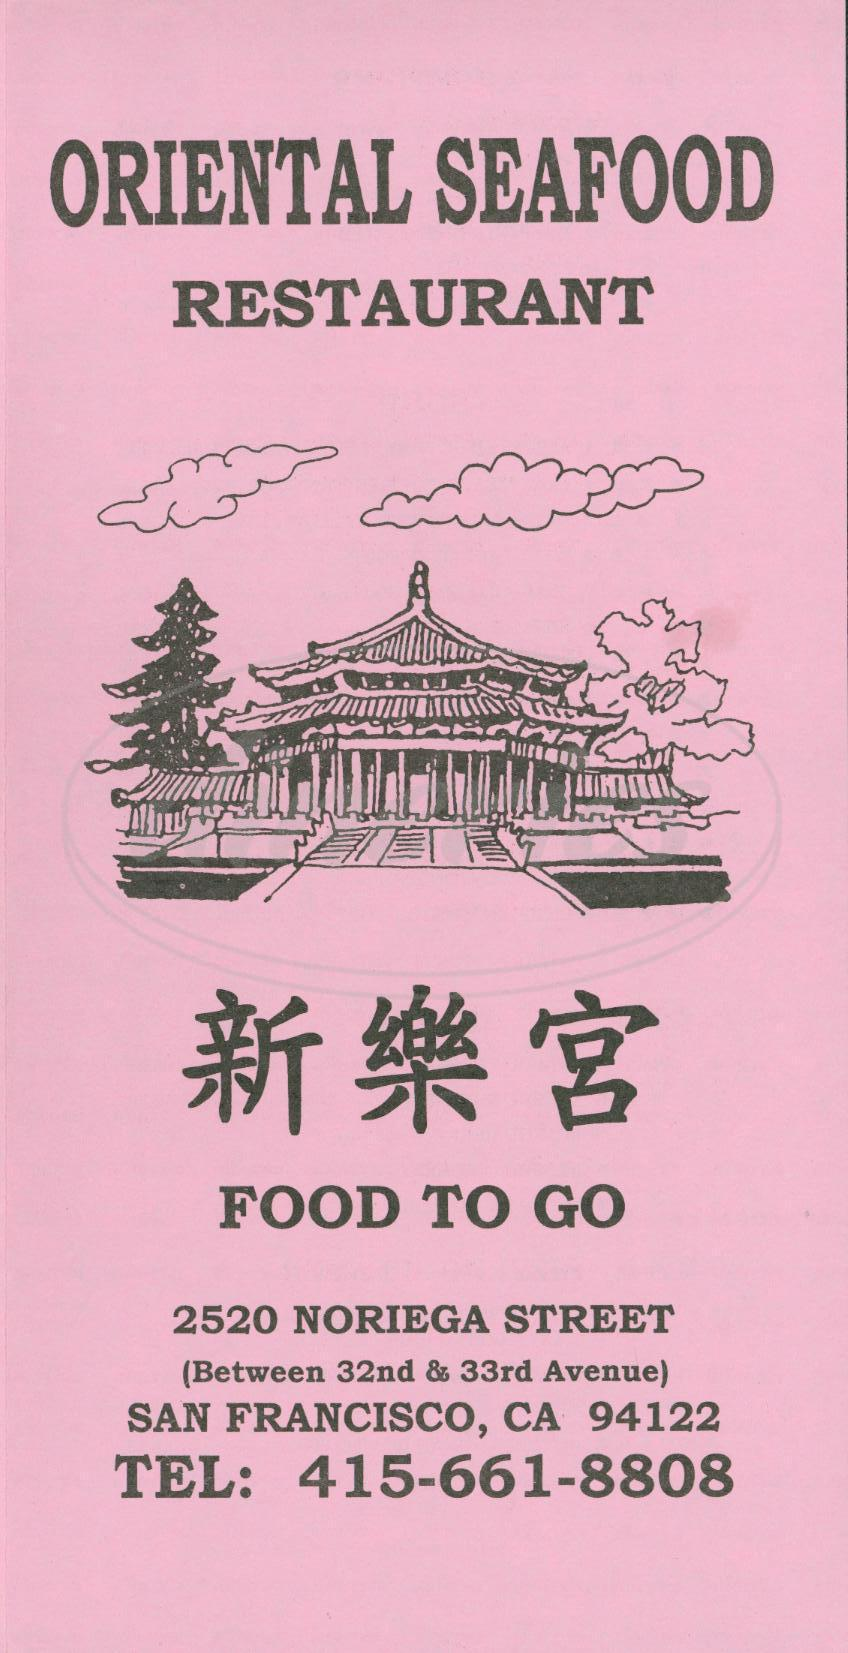 menu for Oriental Seafood Restaurant